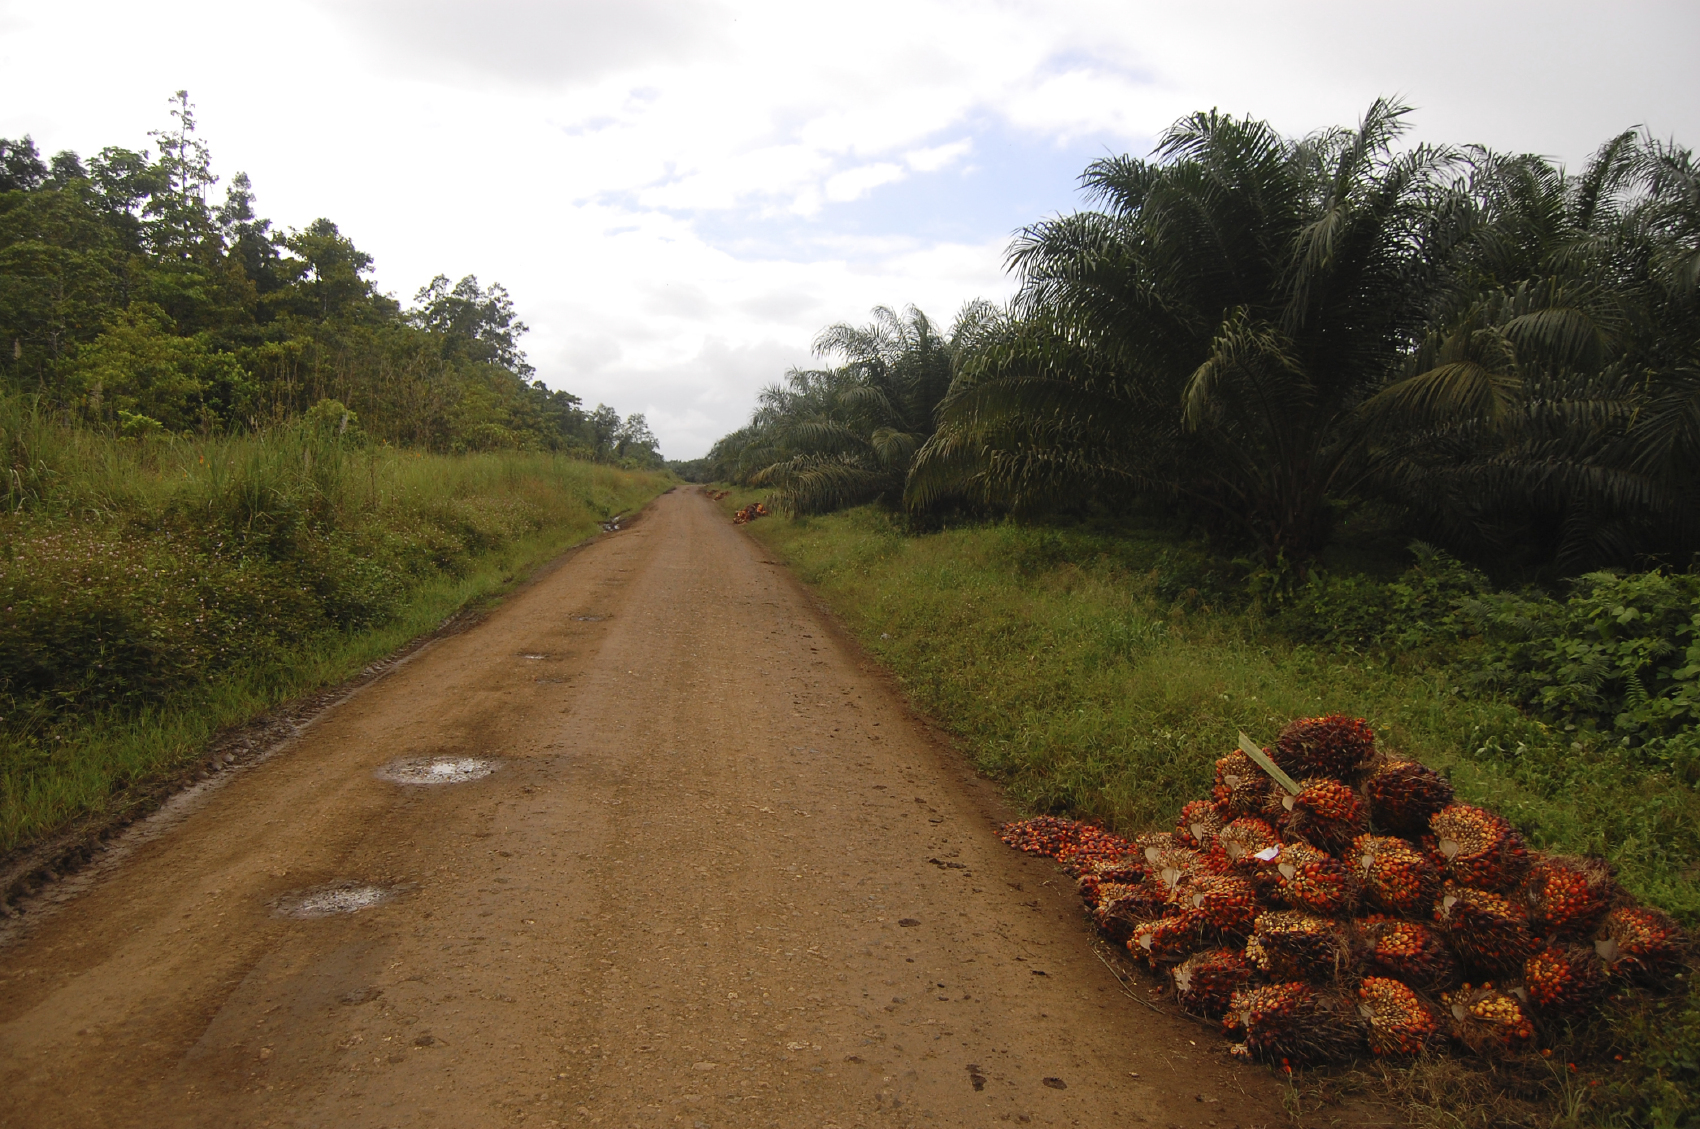 For more information on Palm Oil, click on this image.